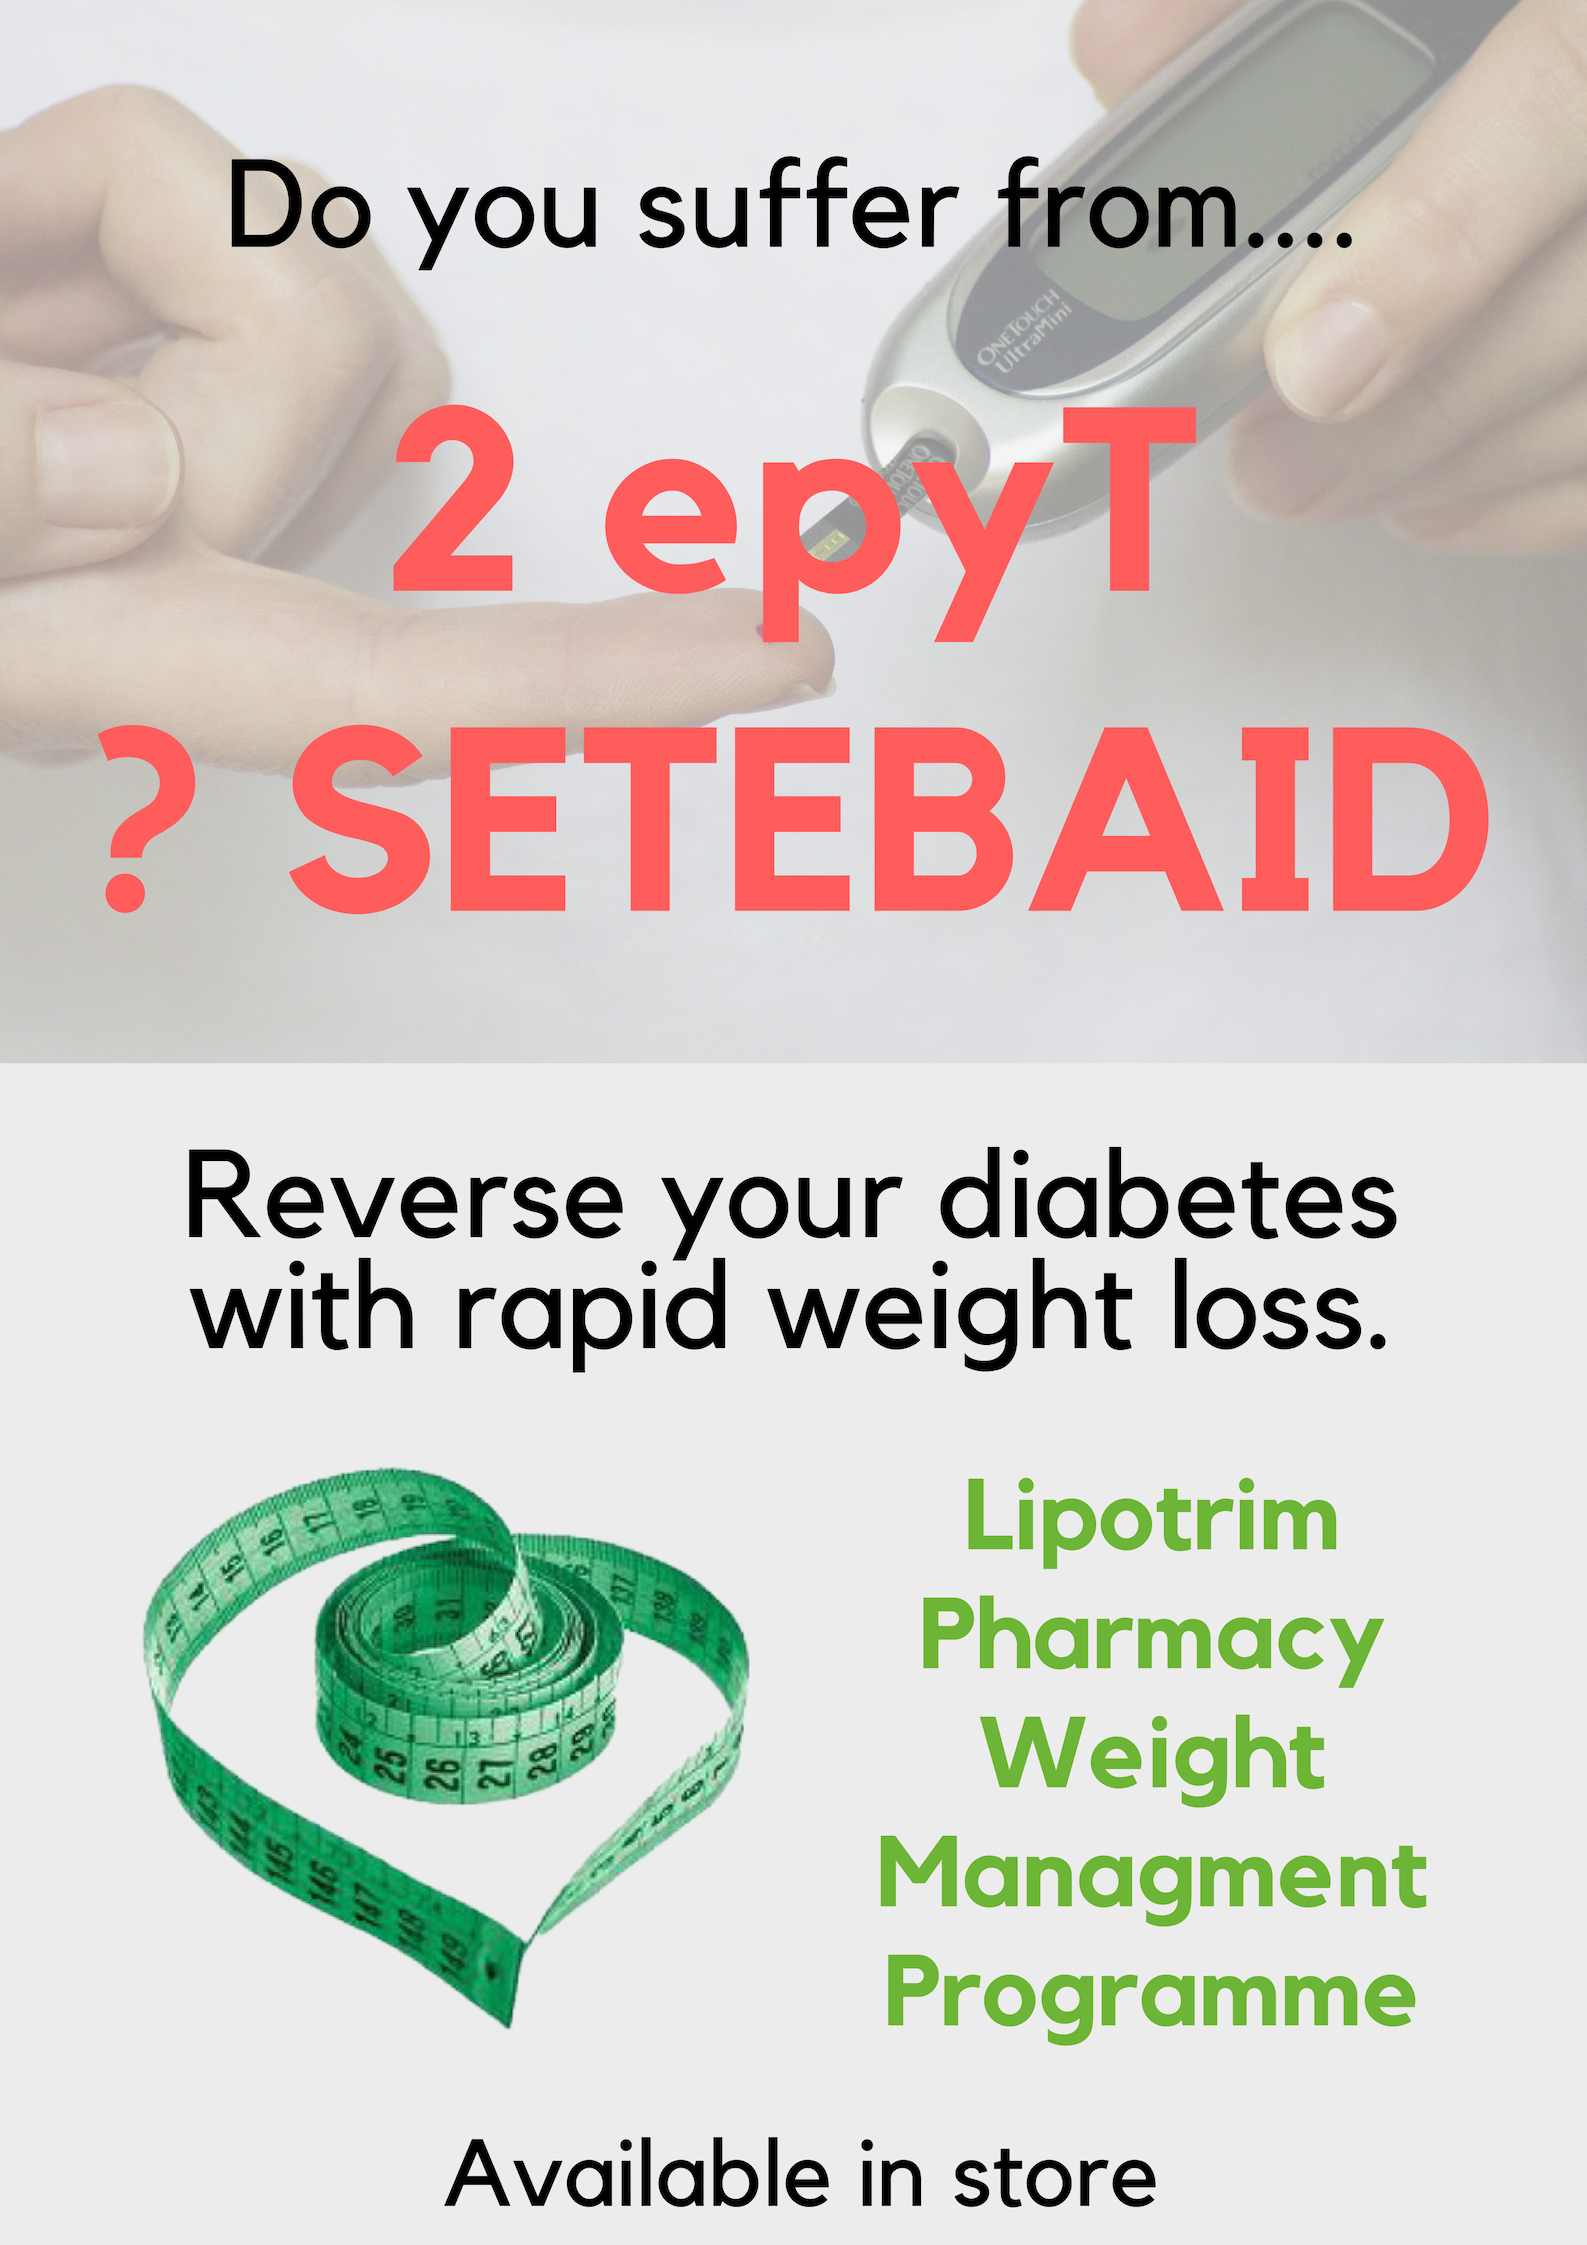 Reverse Type 2 diabetes - Lipotrim pharmacy poster